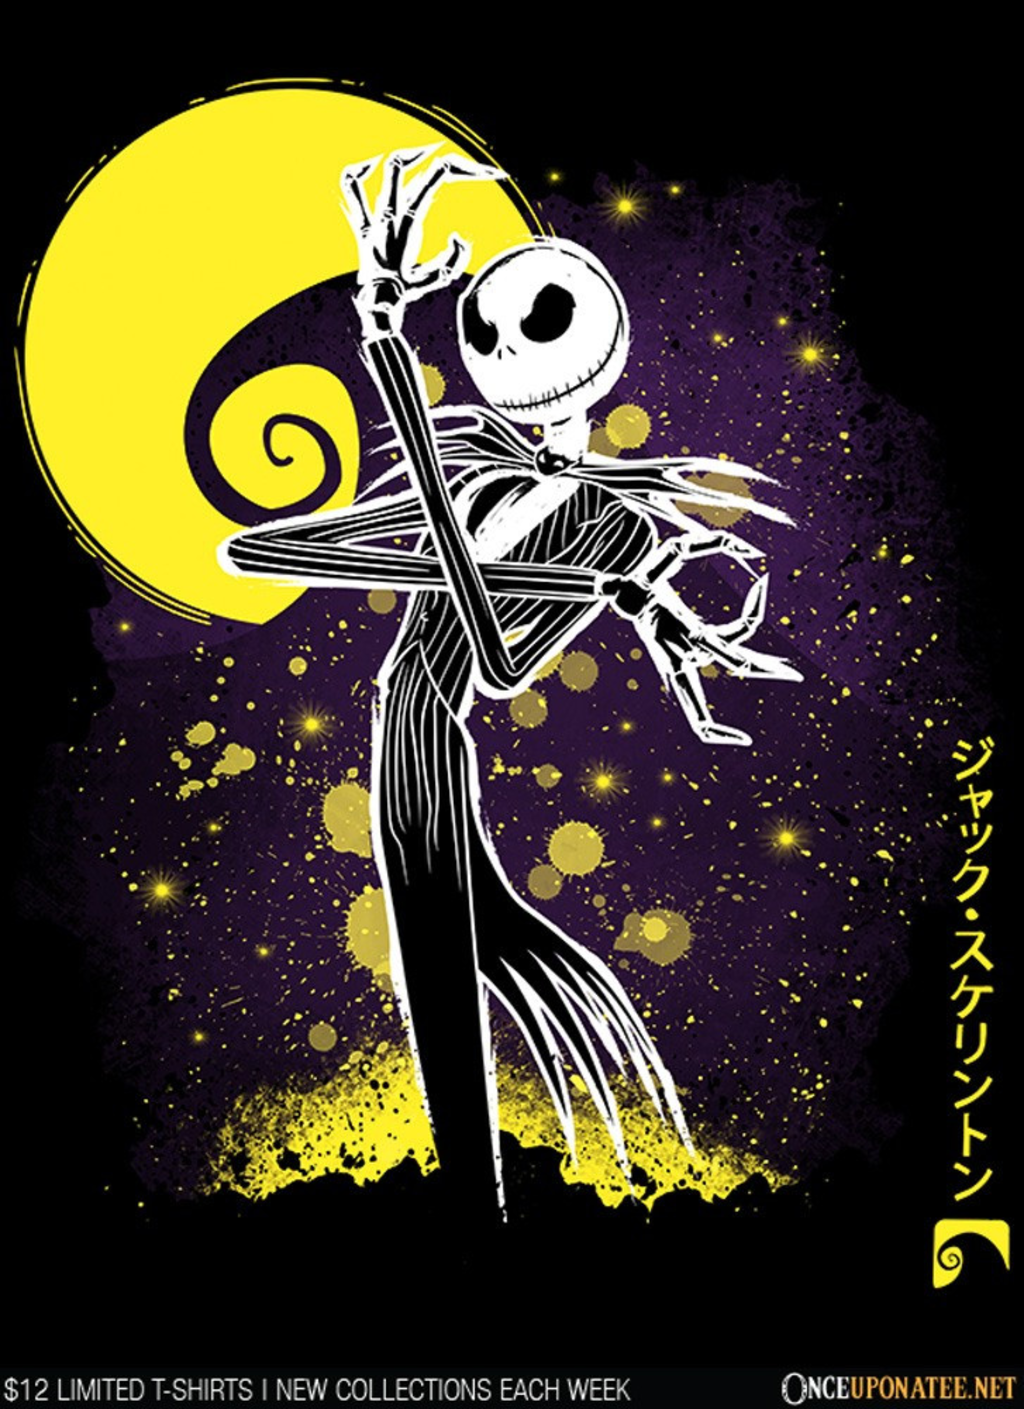 Once Upon a Tee: The Pumpkin King